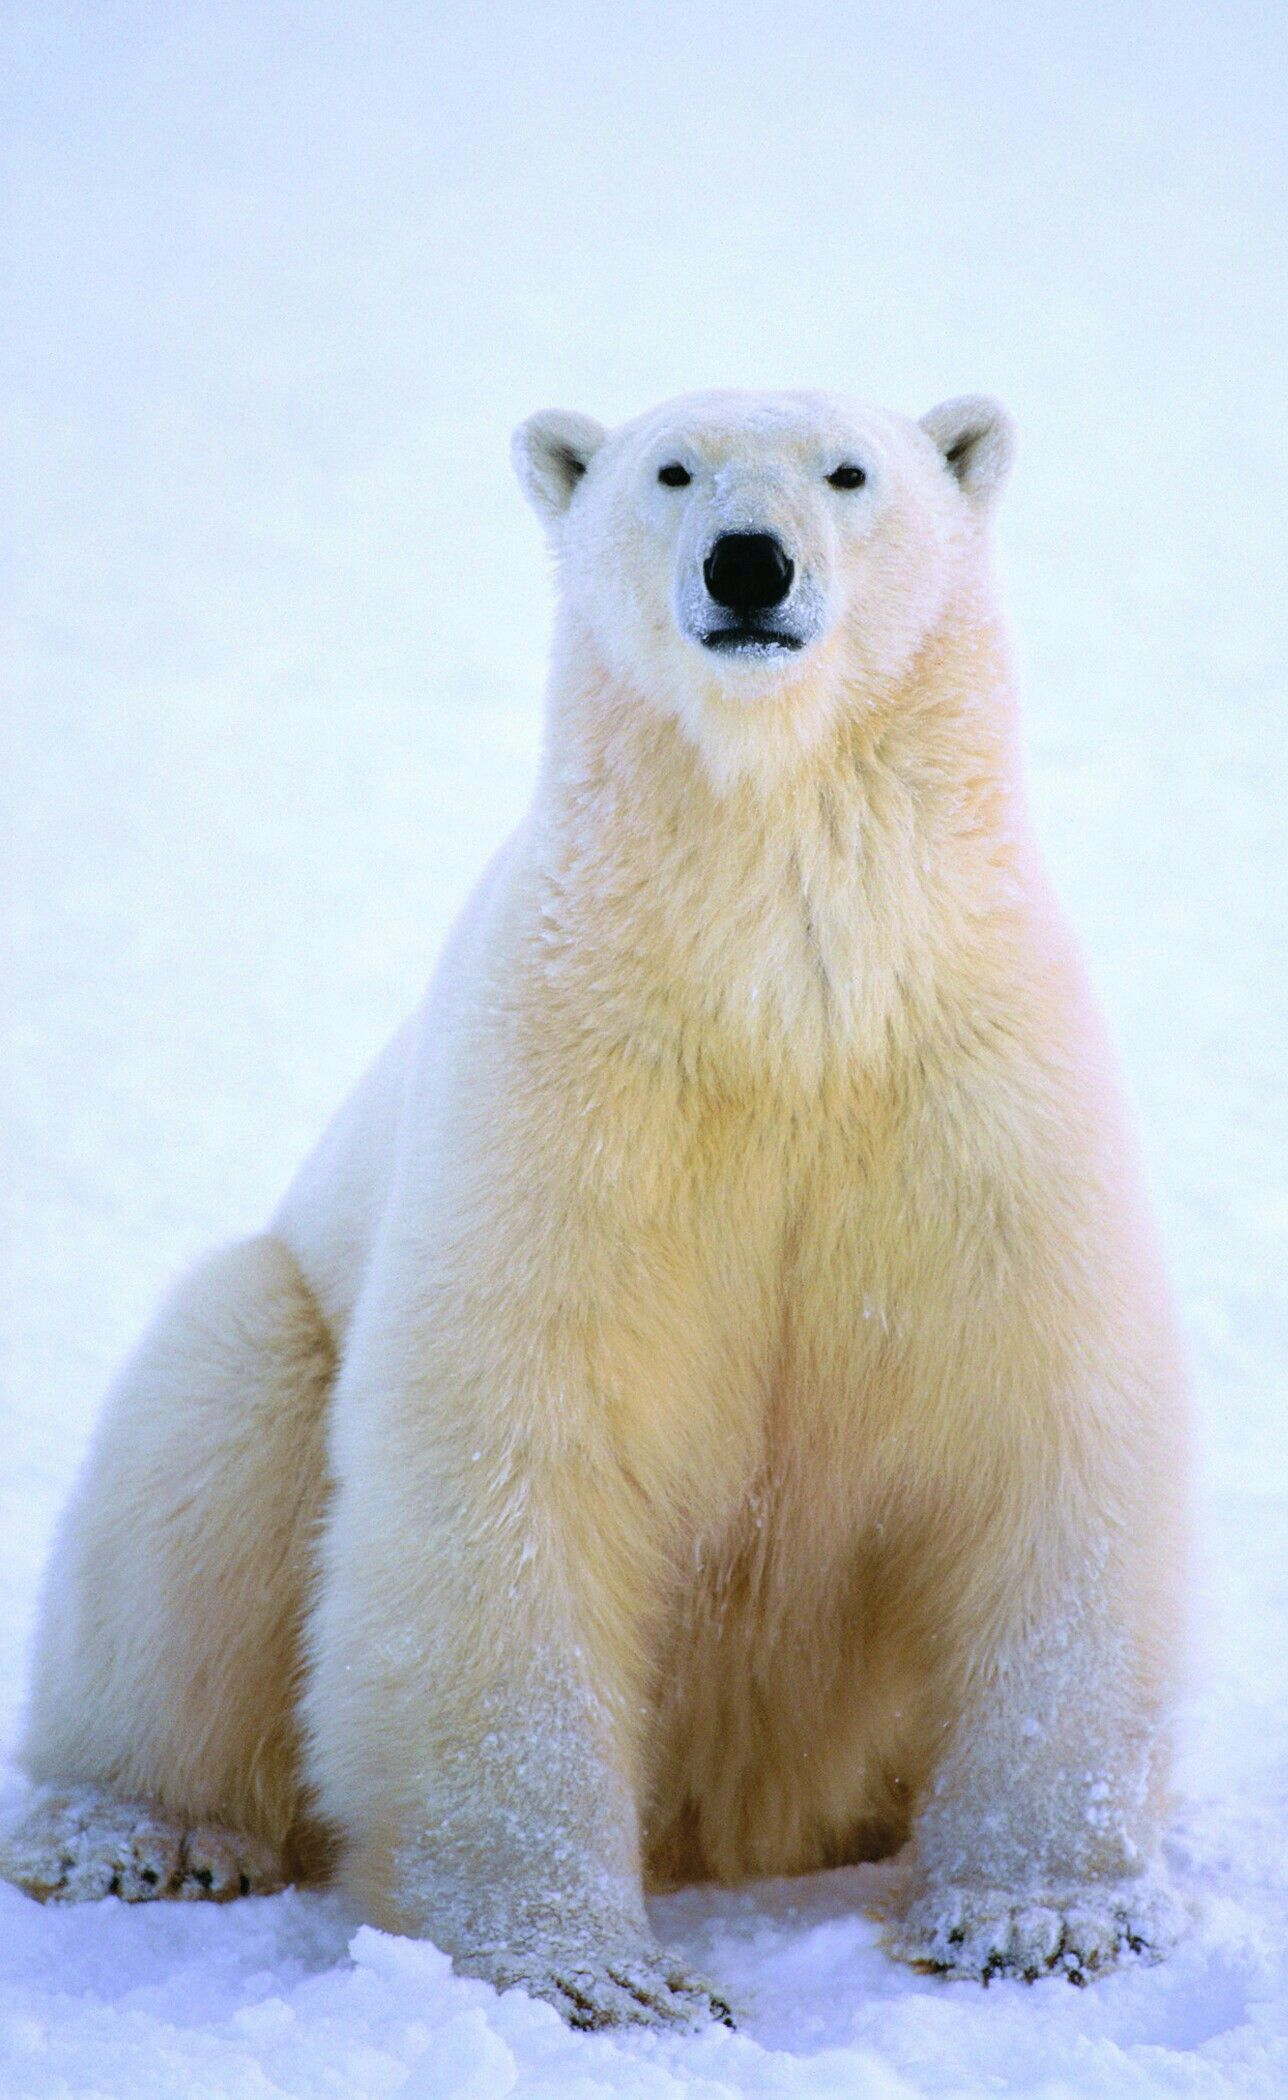 sitting up proud el228imi228 polar bearbear ja bear photos